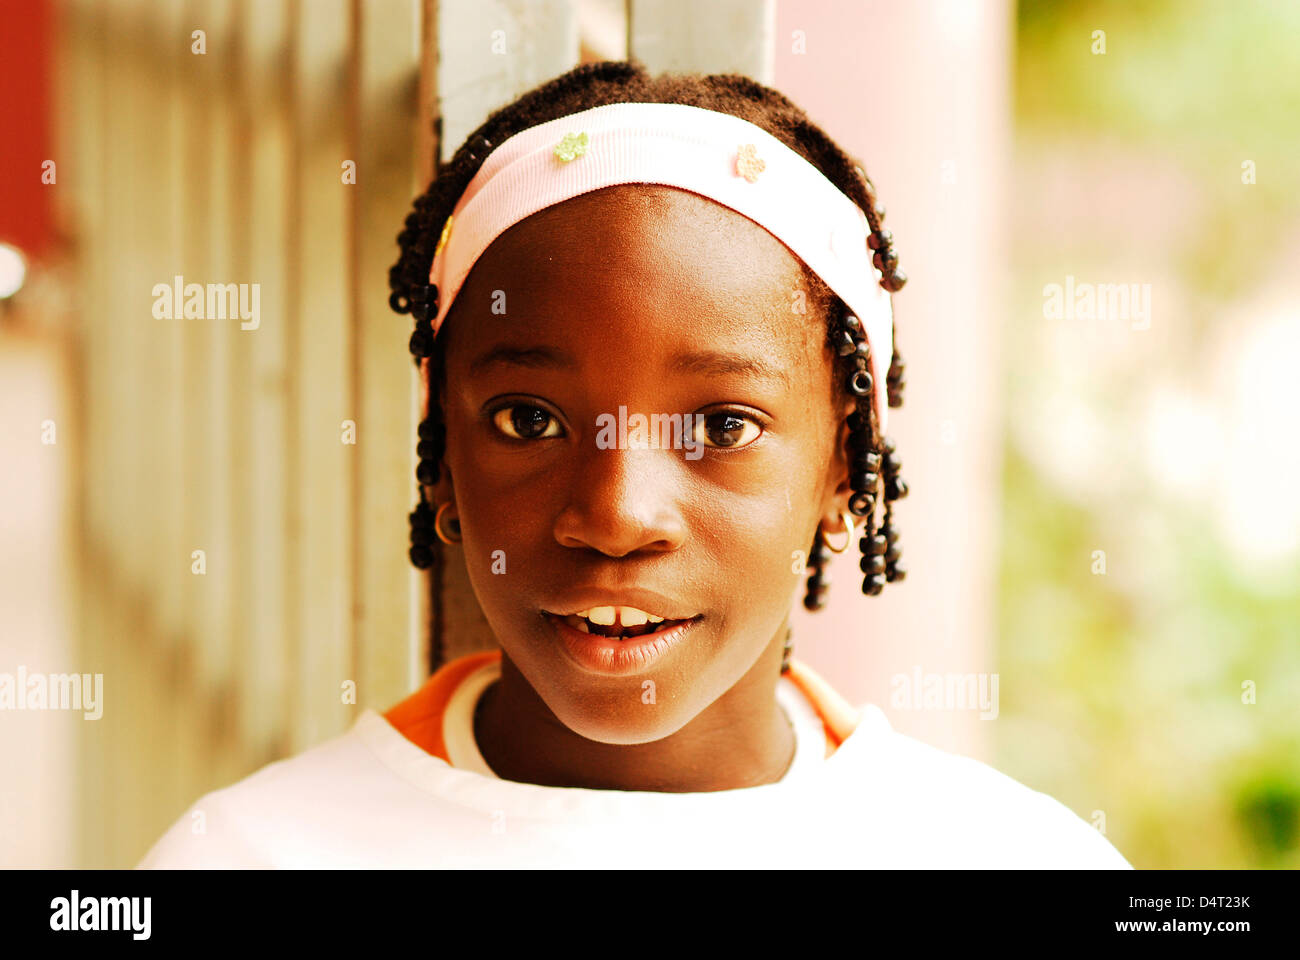 Africa, Angola, Luanda, close-up portrait of a cheerful little African girl in a headband. (MR) - Stock Image